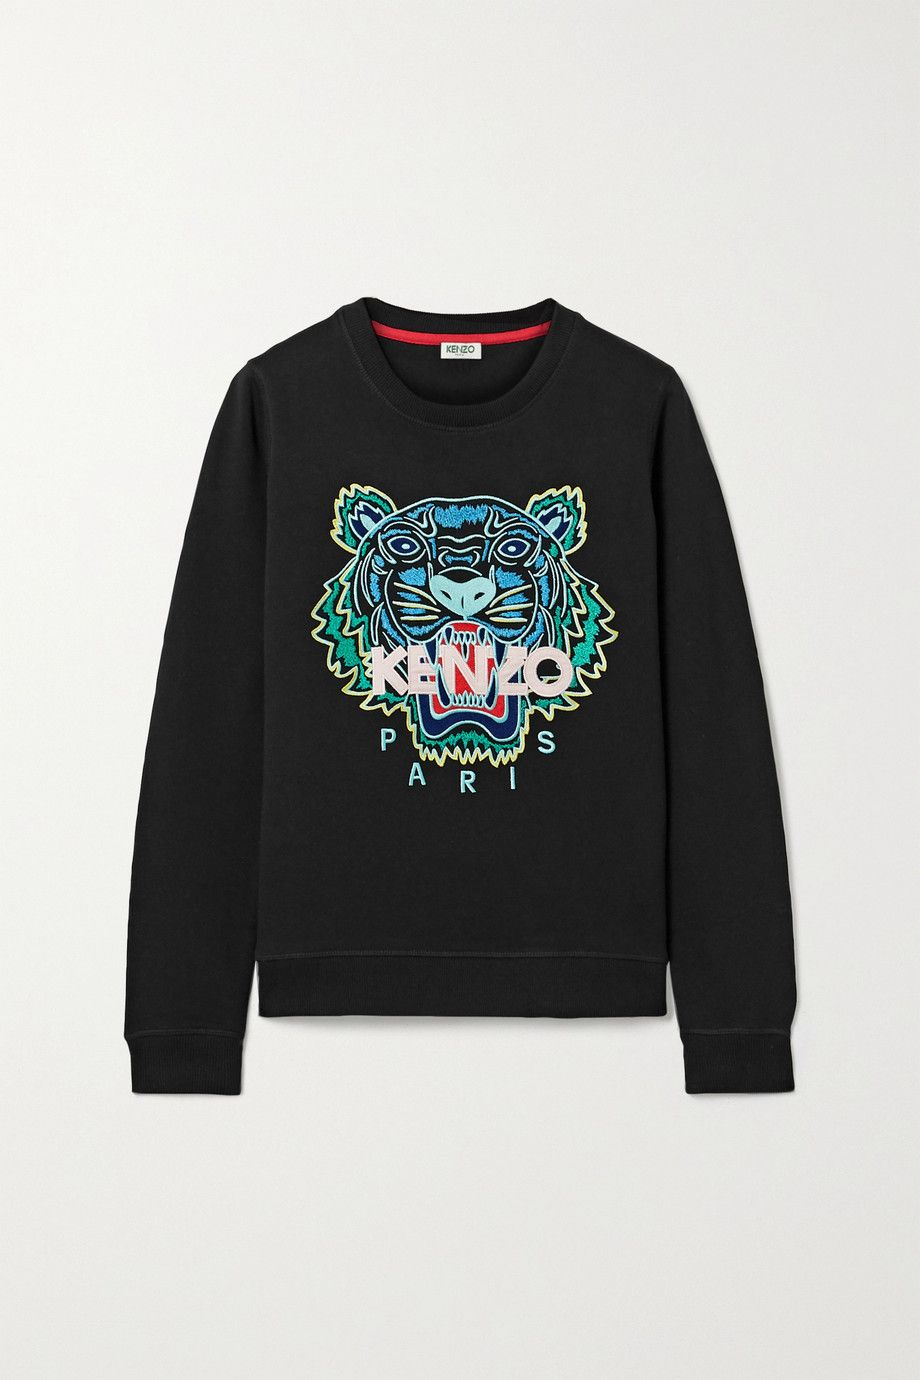 kenzo-tiger-embroidered-cotton-jersey-sweatshirt